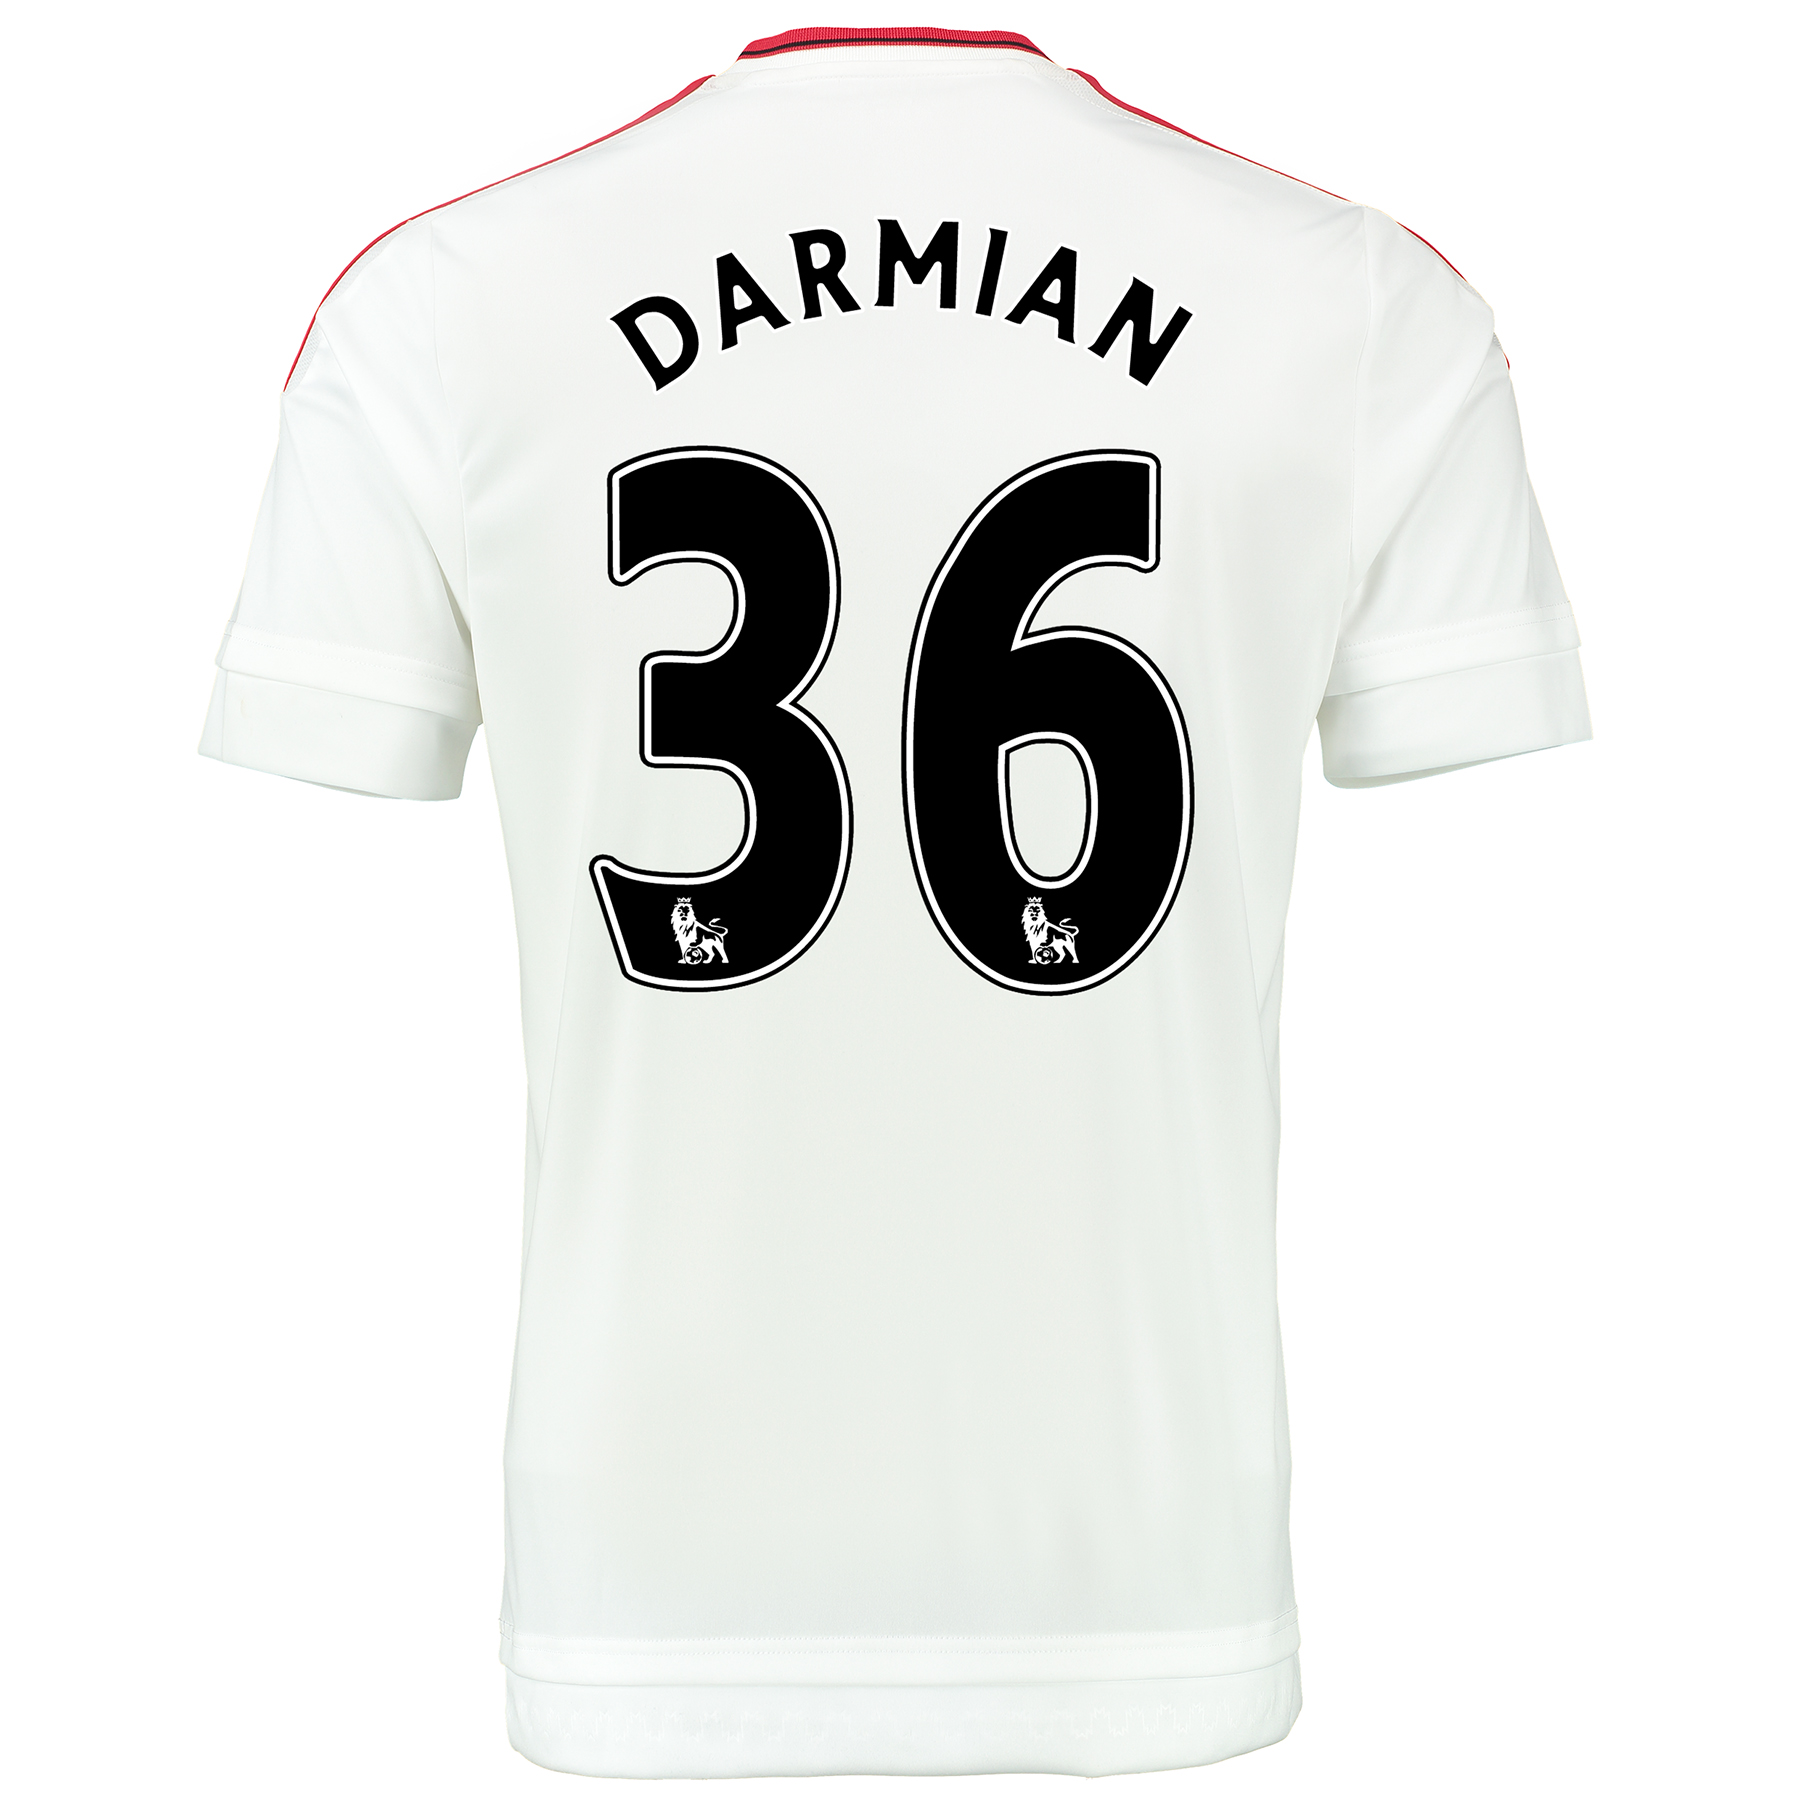 Manchester United Away Baby Kit 2015/16 White with Darmian 36 printing